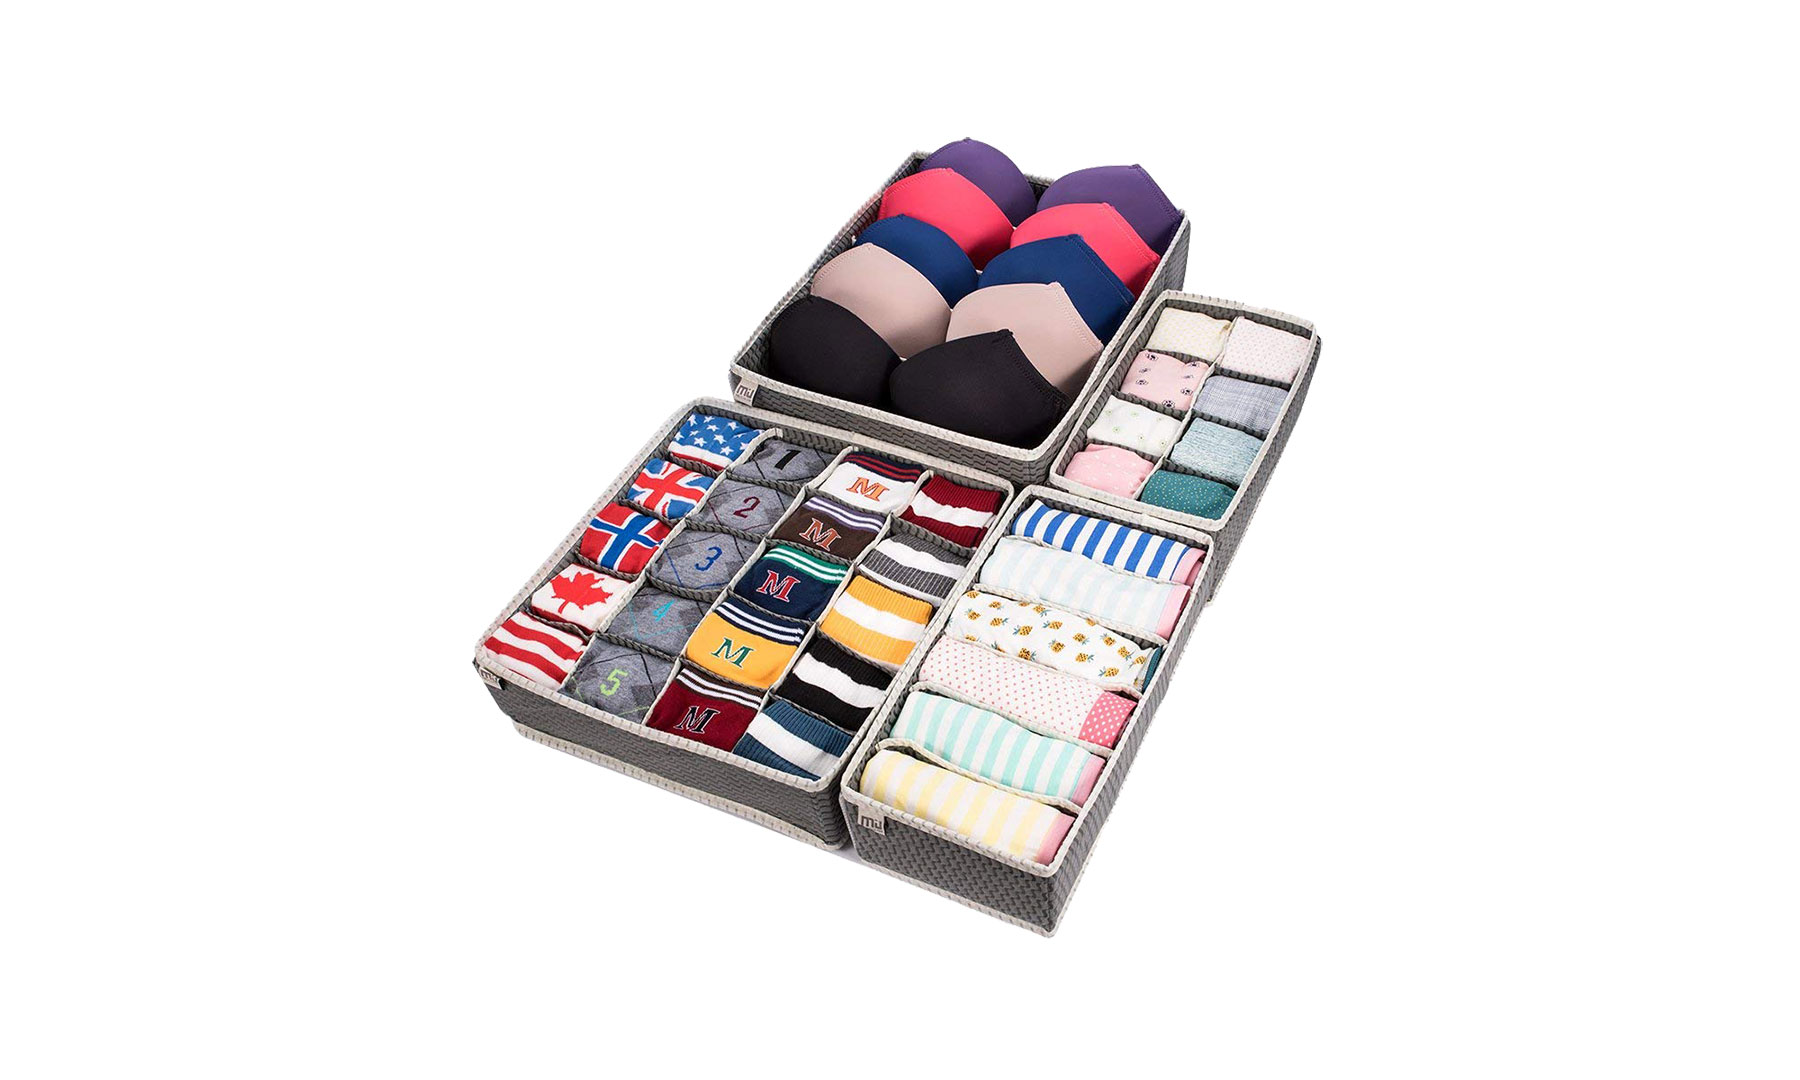 MIU COLOR Foldable Organizers